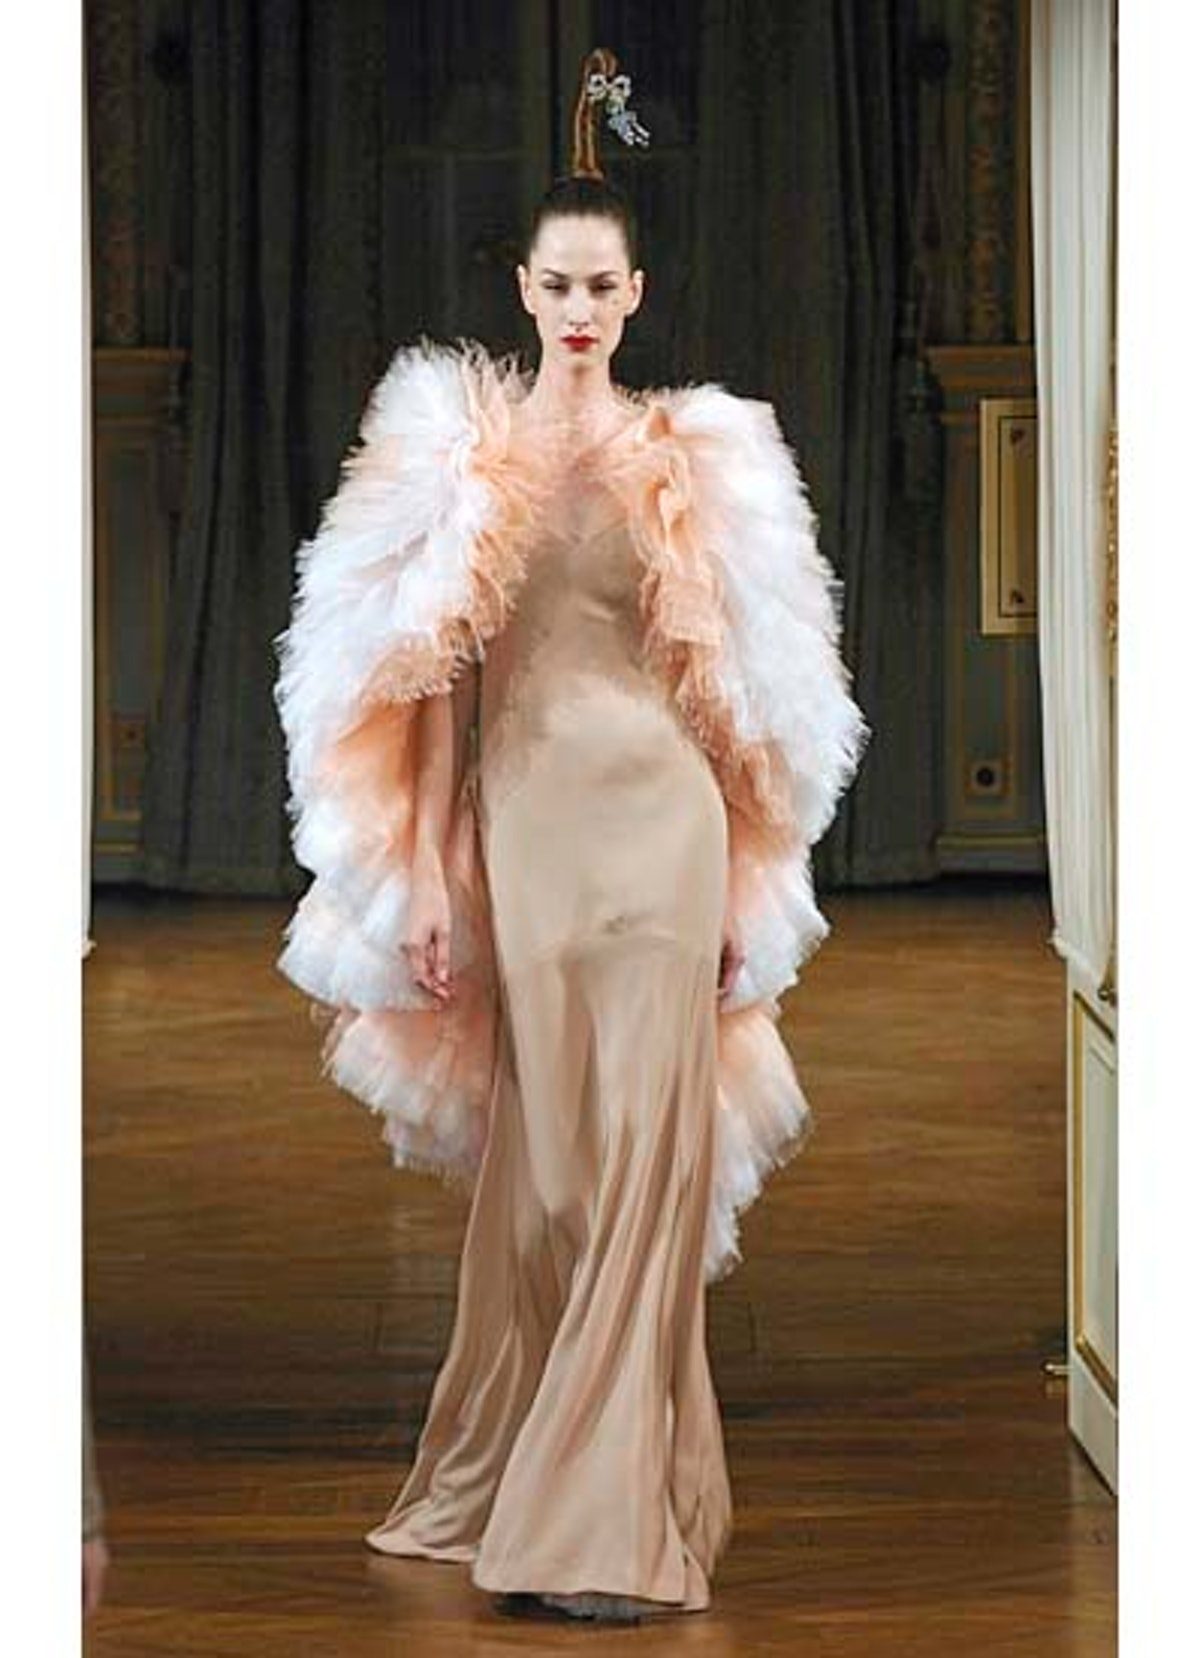 fass-alexis-mabille-couture-2012-runway-09-v.jpg